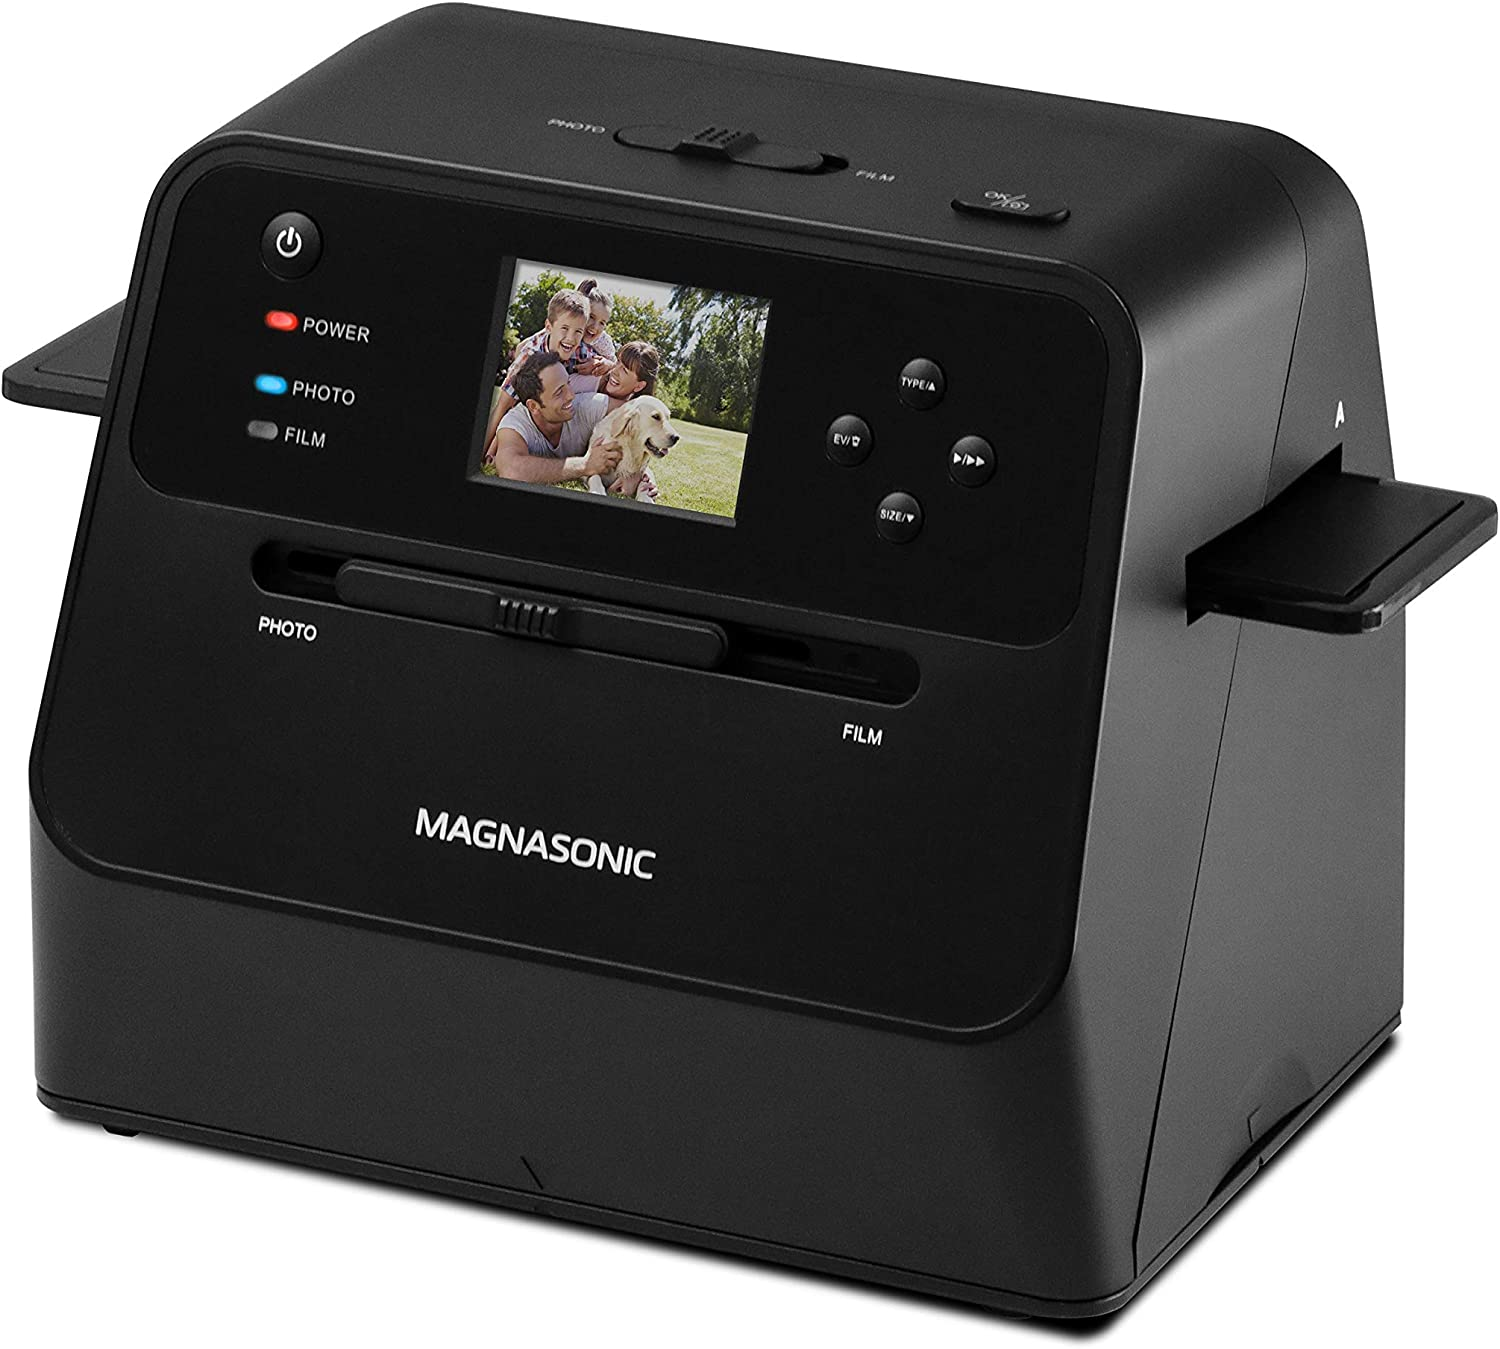 """Magnasonic All-in-One Film & Photo Scanner, 14MP Resolution, Converts 4x6 Photos, 35mm/110/126 Film & 135 Slides into Digital JPEGs, Vibrant 2.4"""" LCD Screen, Fast Scanning (FS60)"""